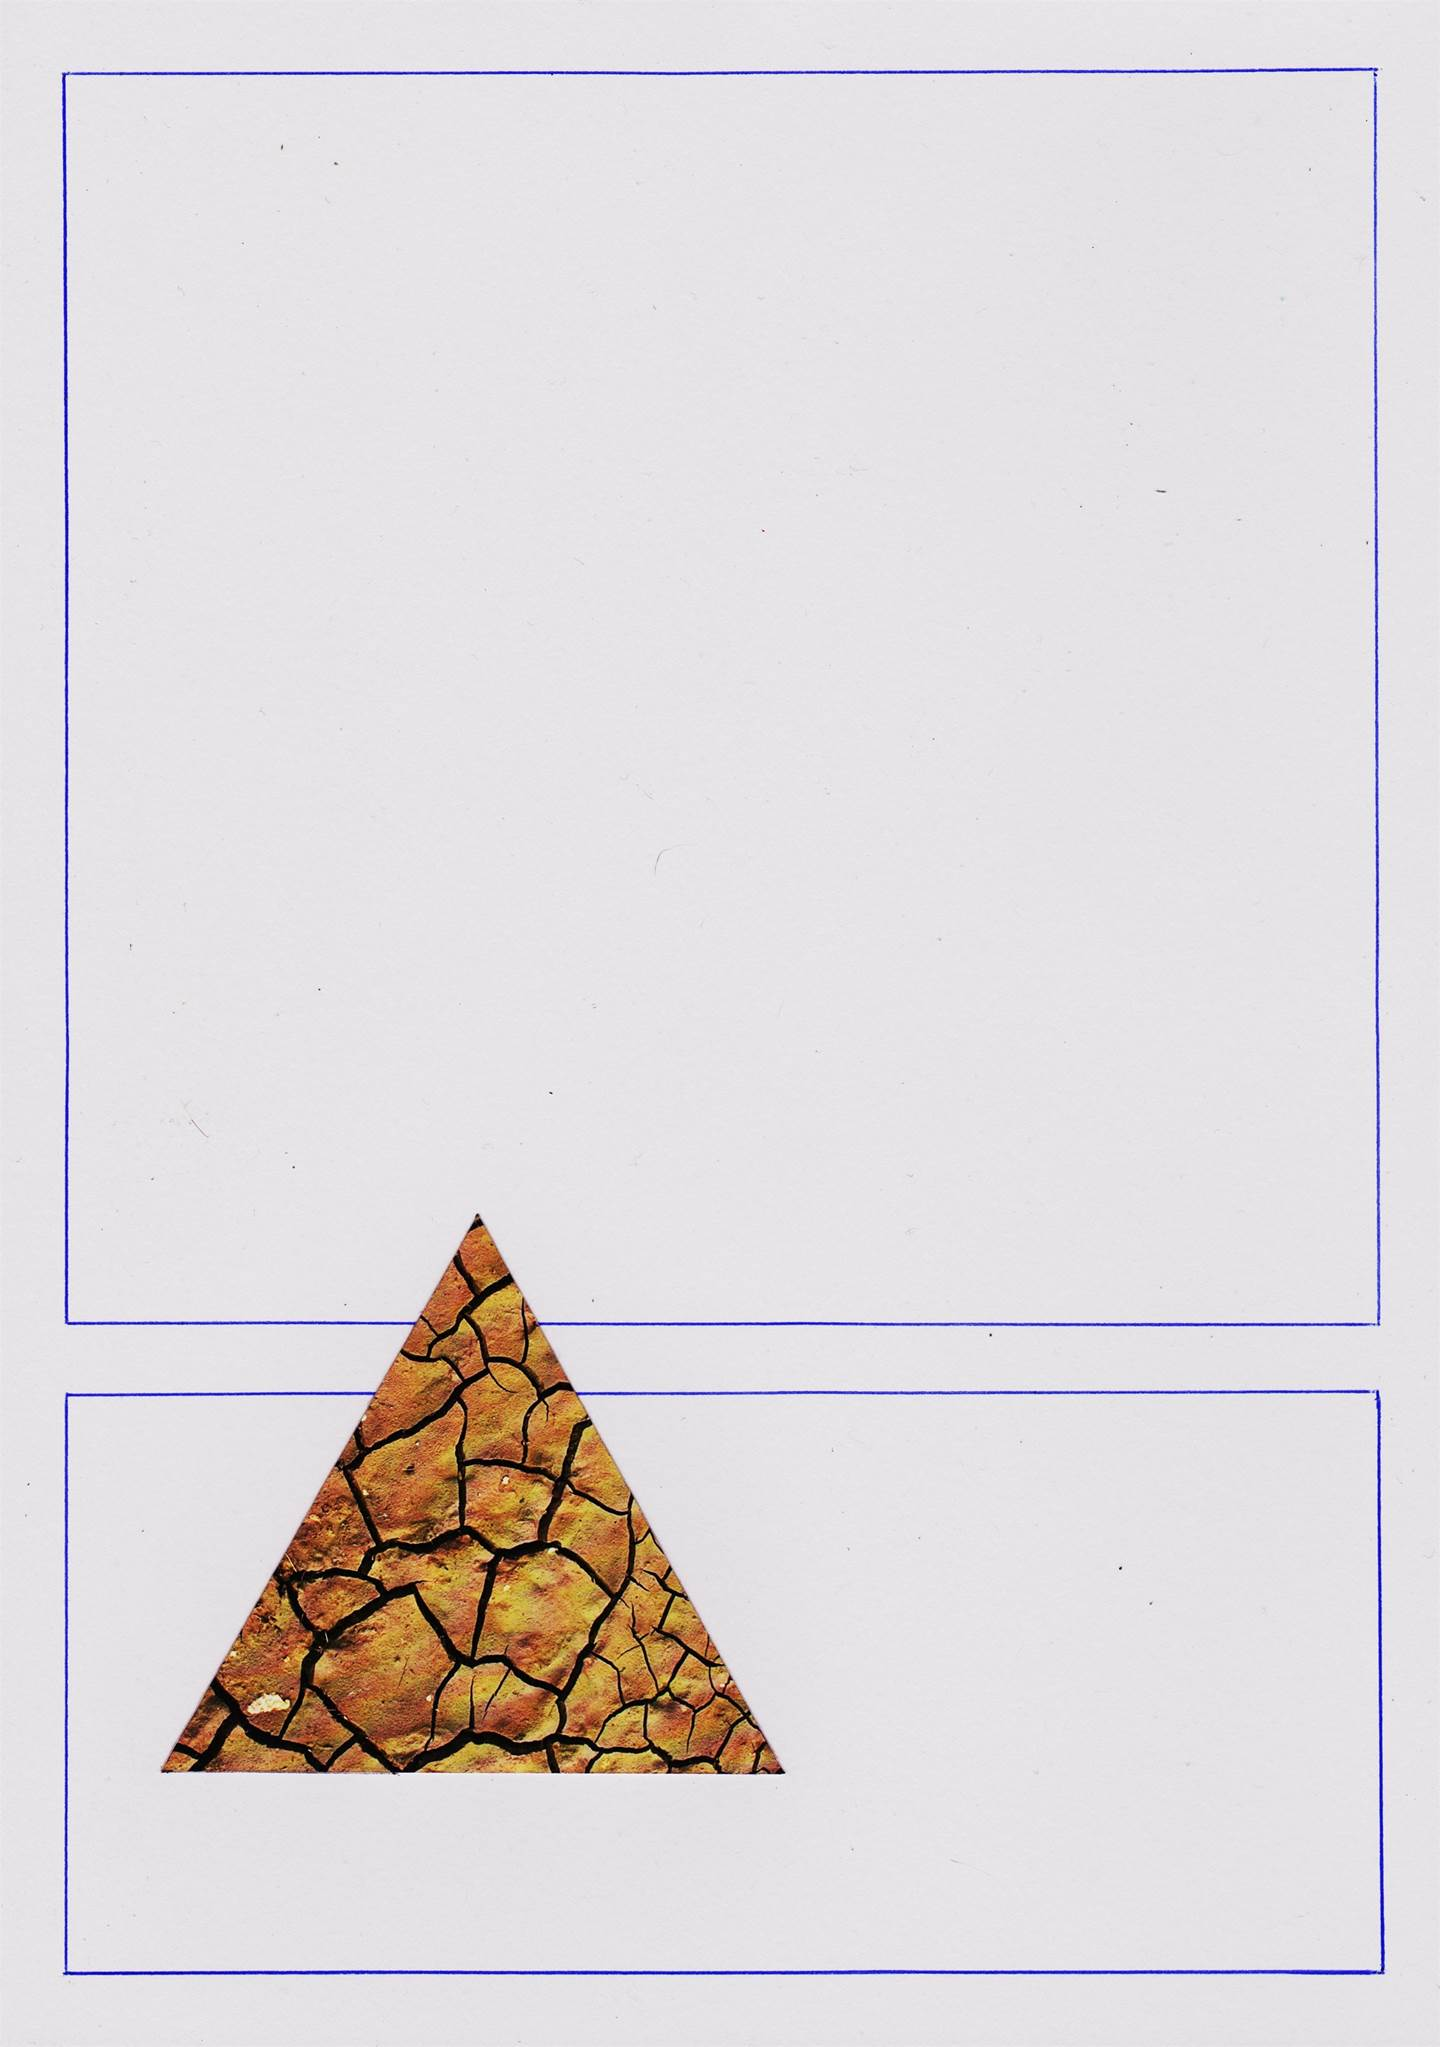 das Falésias II, original Minimalist Collage Drawing and Illustration by Mariana Bastos